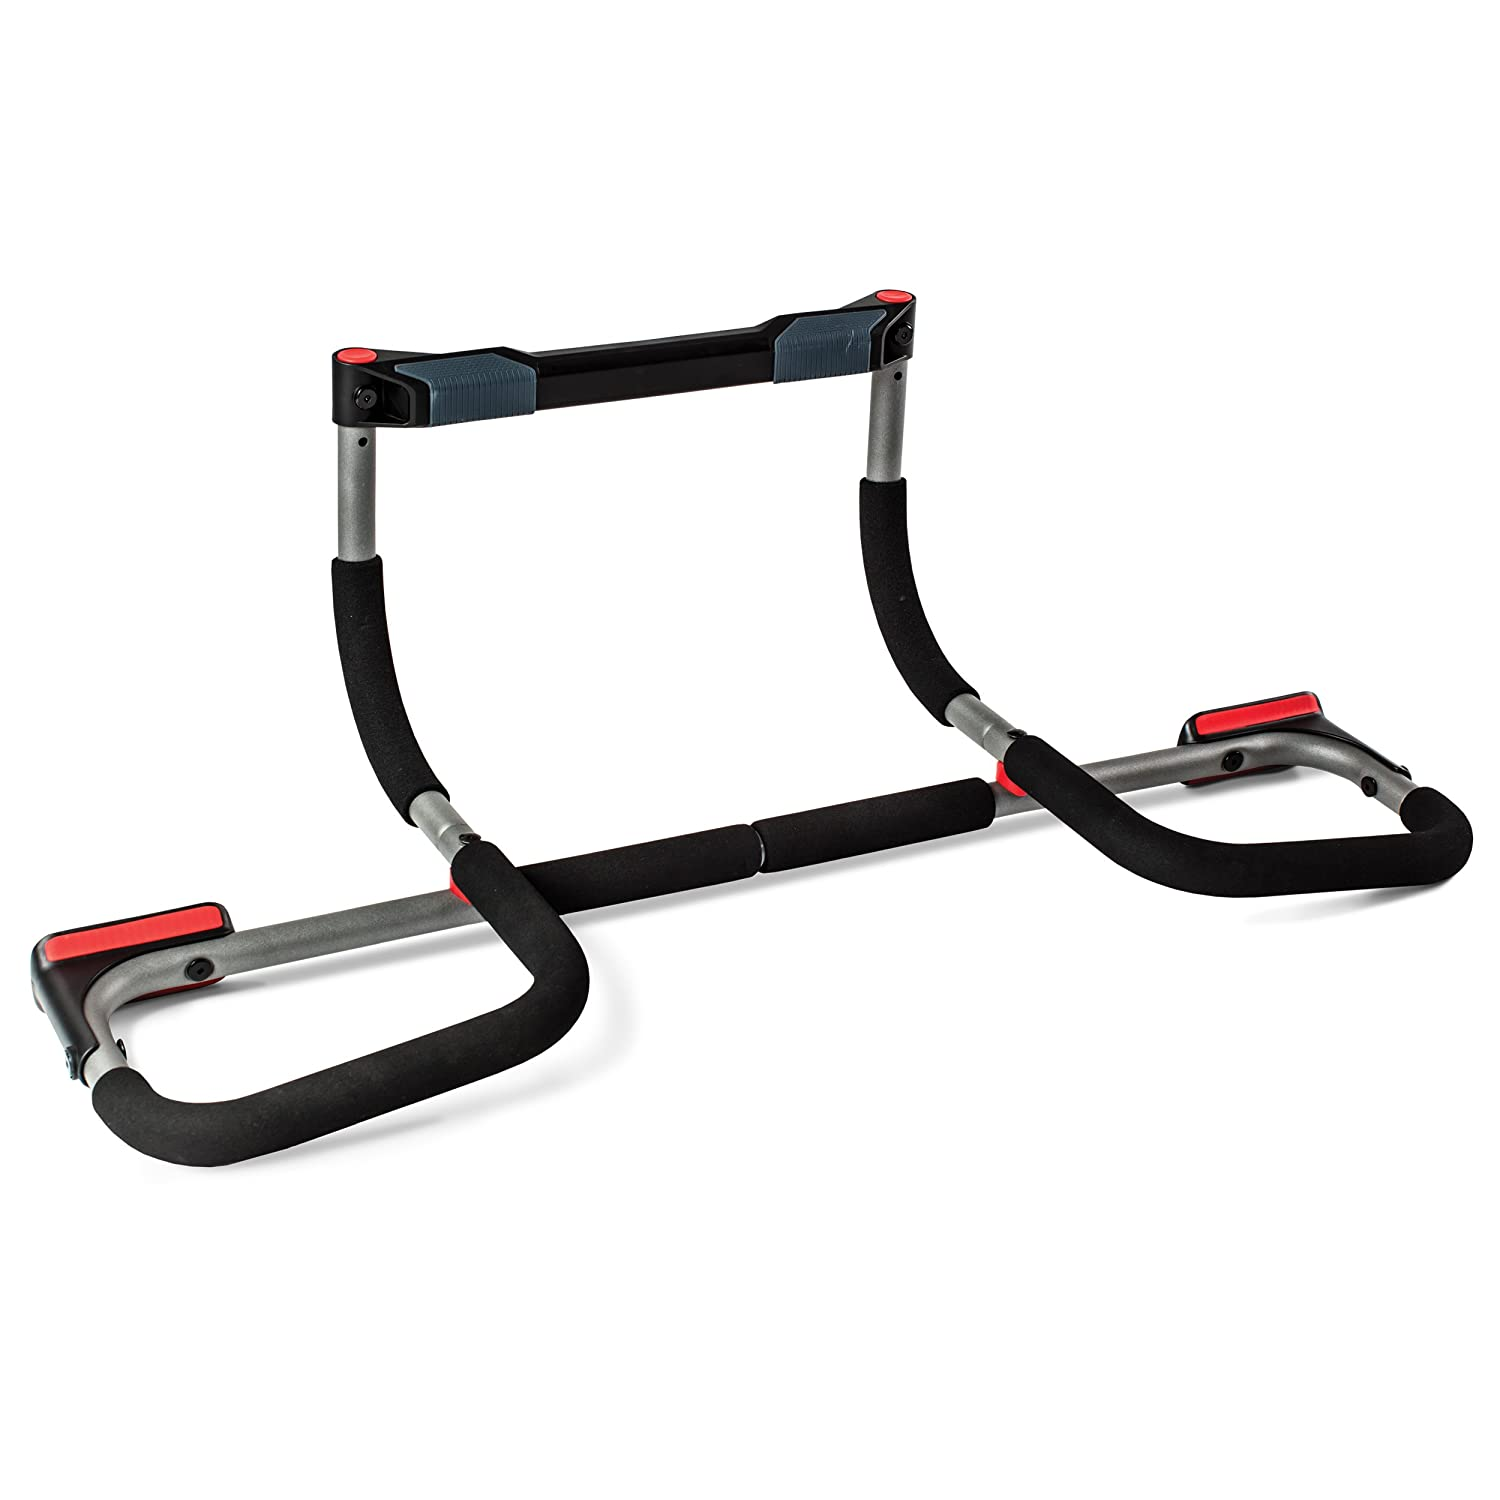 71ovCMokP L. SL1500  Top Result 50 Unique Portable Pull Up Bar